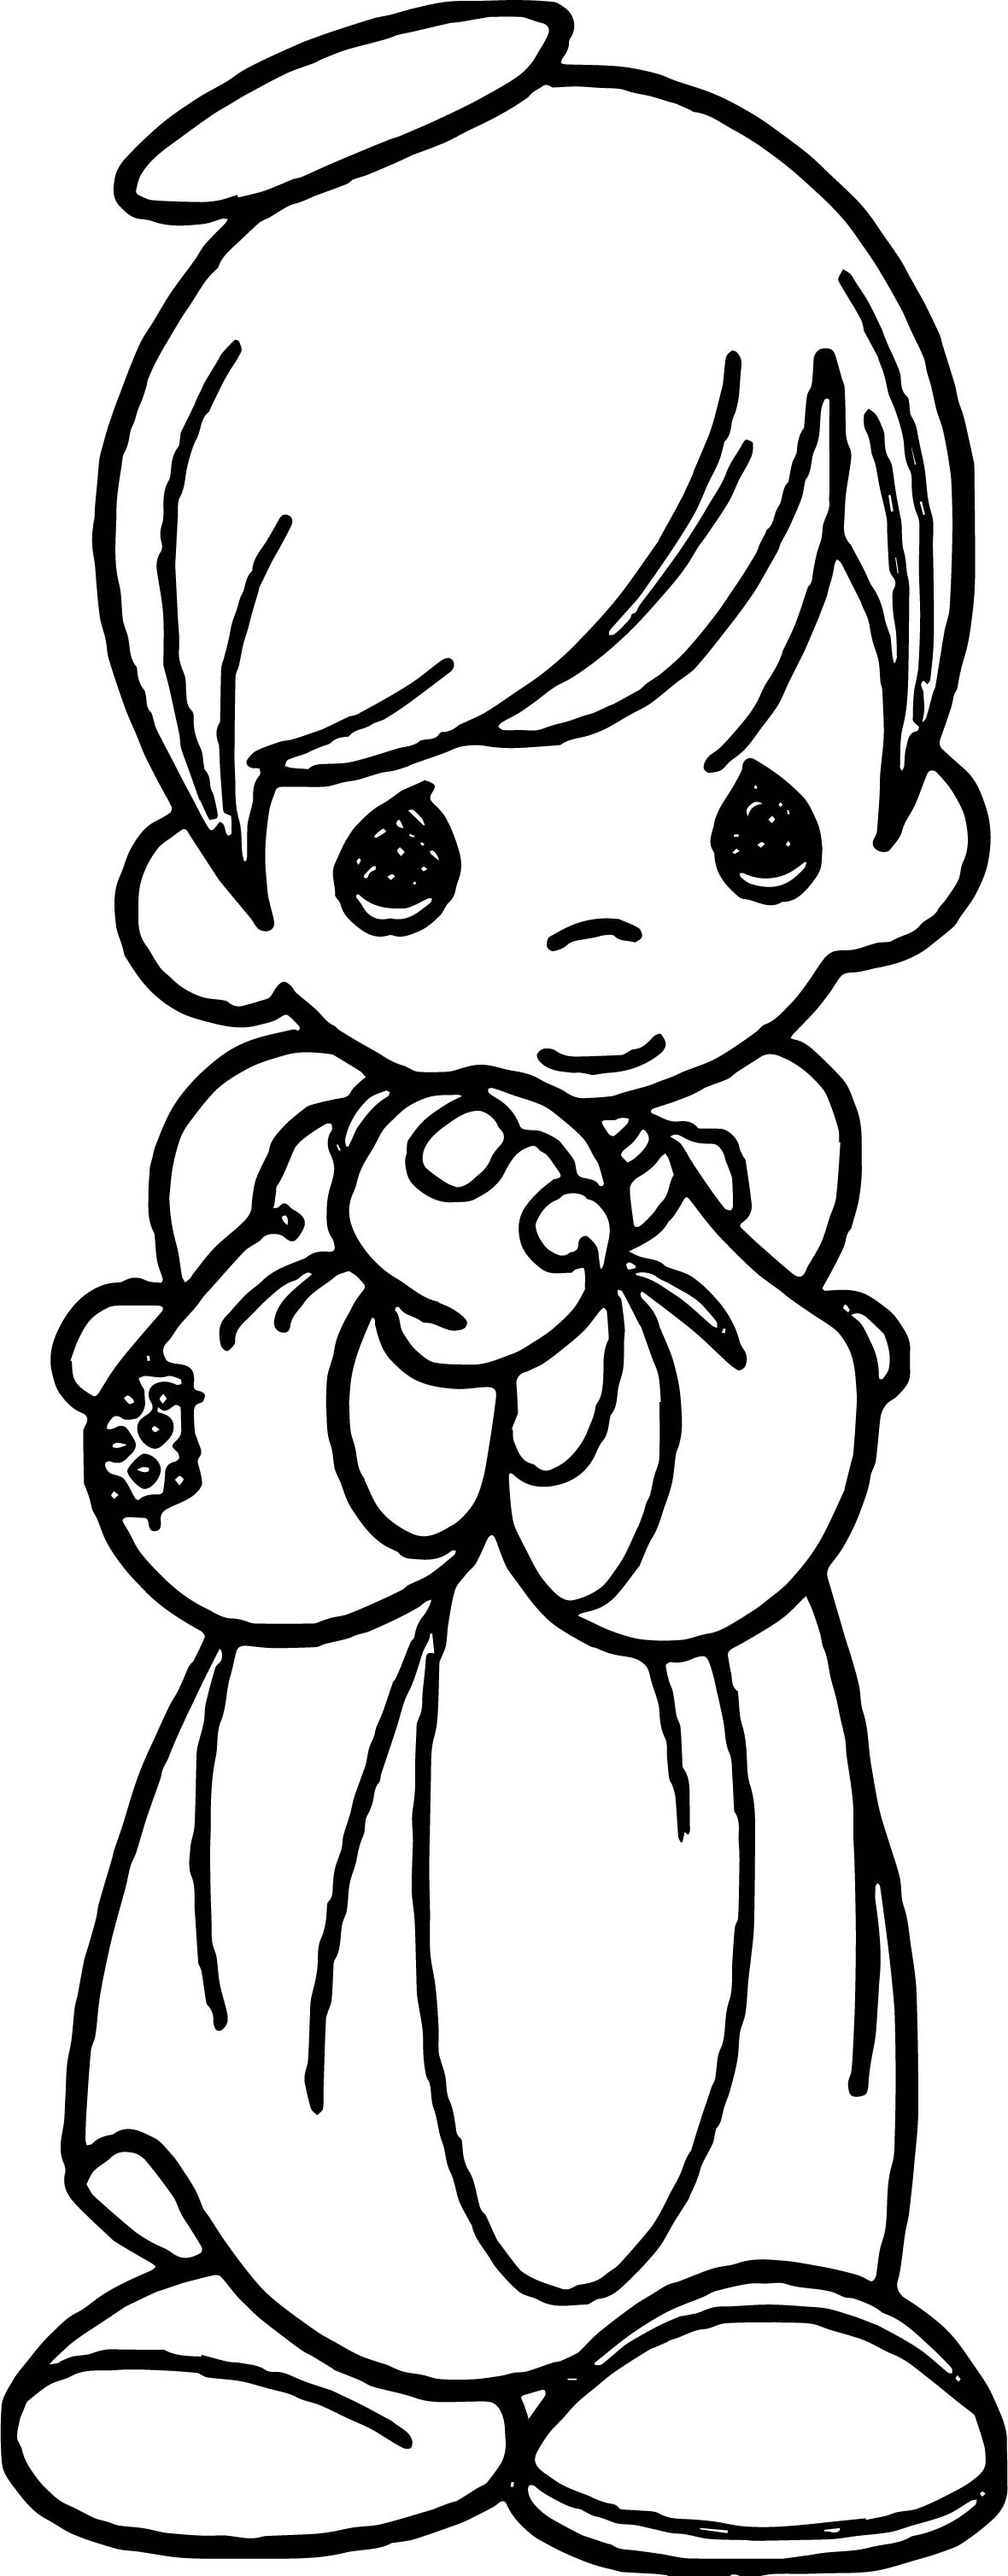 1180x3017 Cute Angel Coloring Page For Girls To Print Free Printable Adult